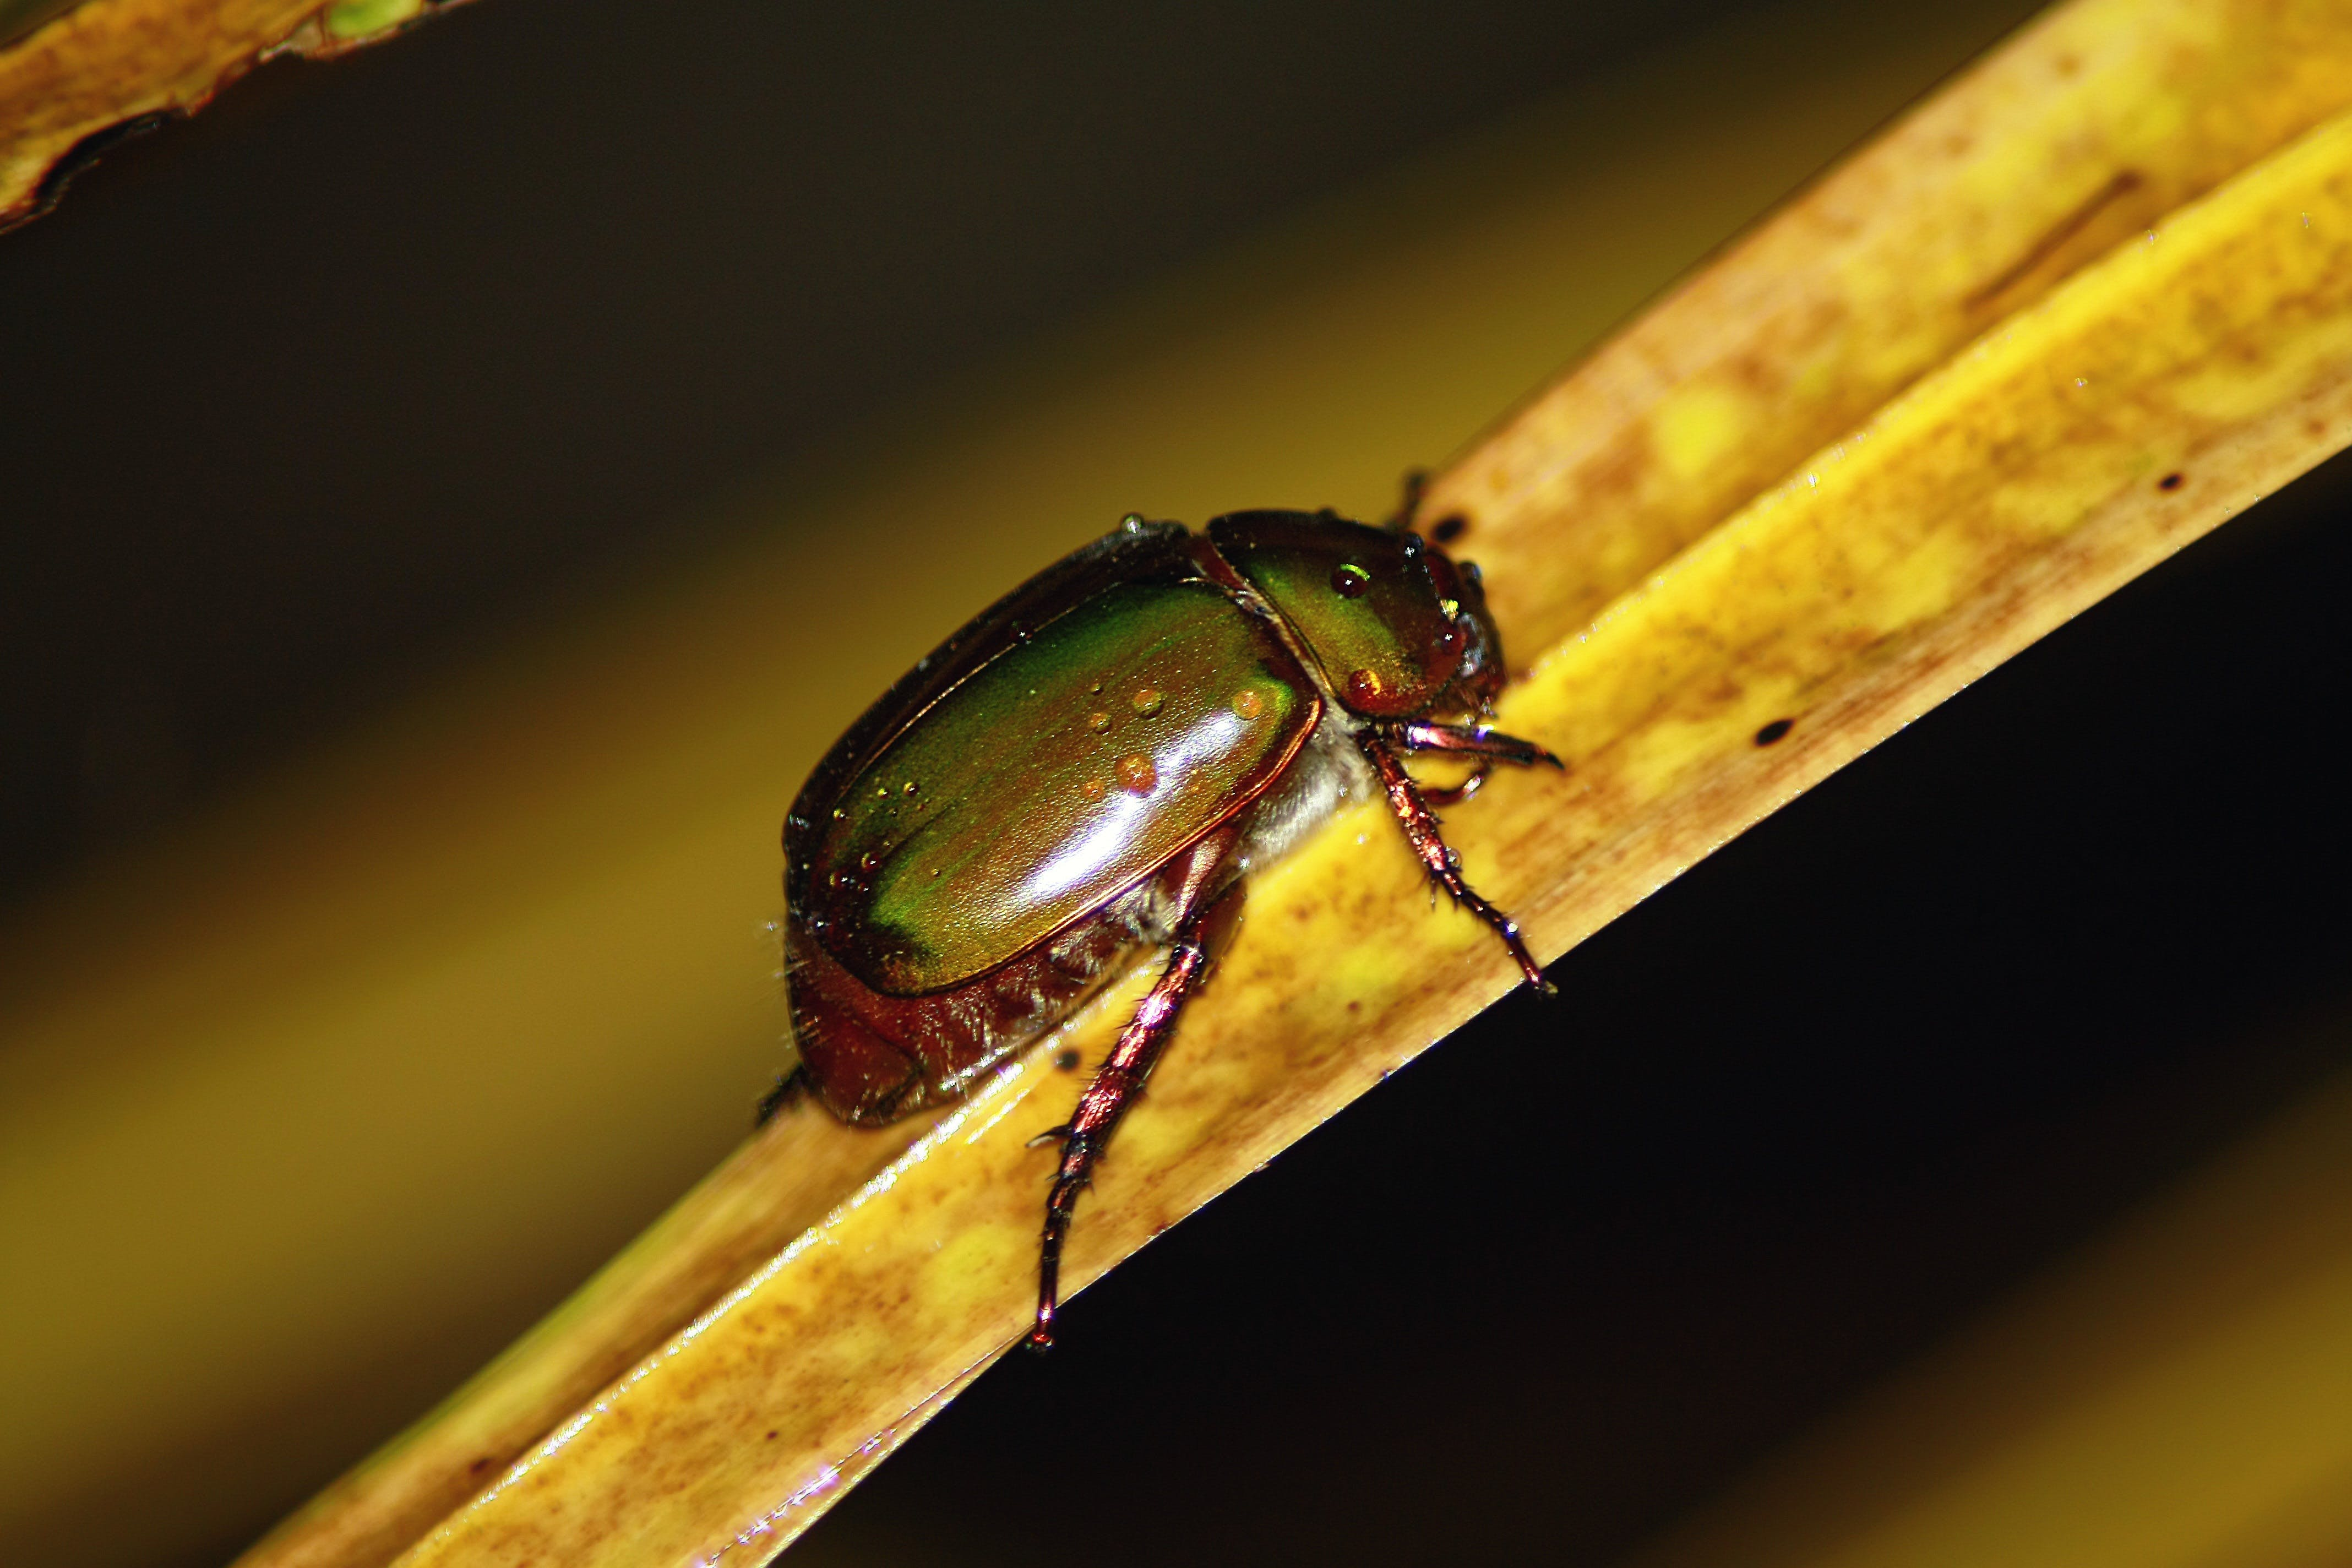 Black and Green Beetle on Brown Leaf